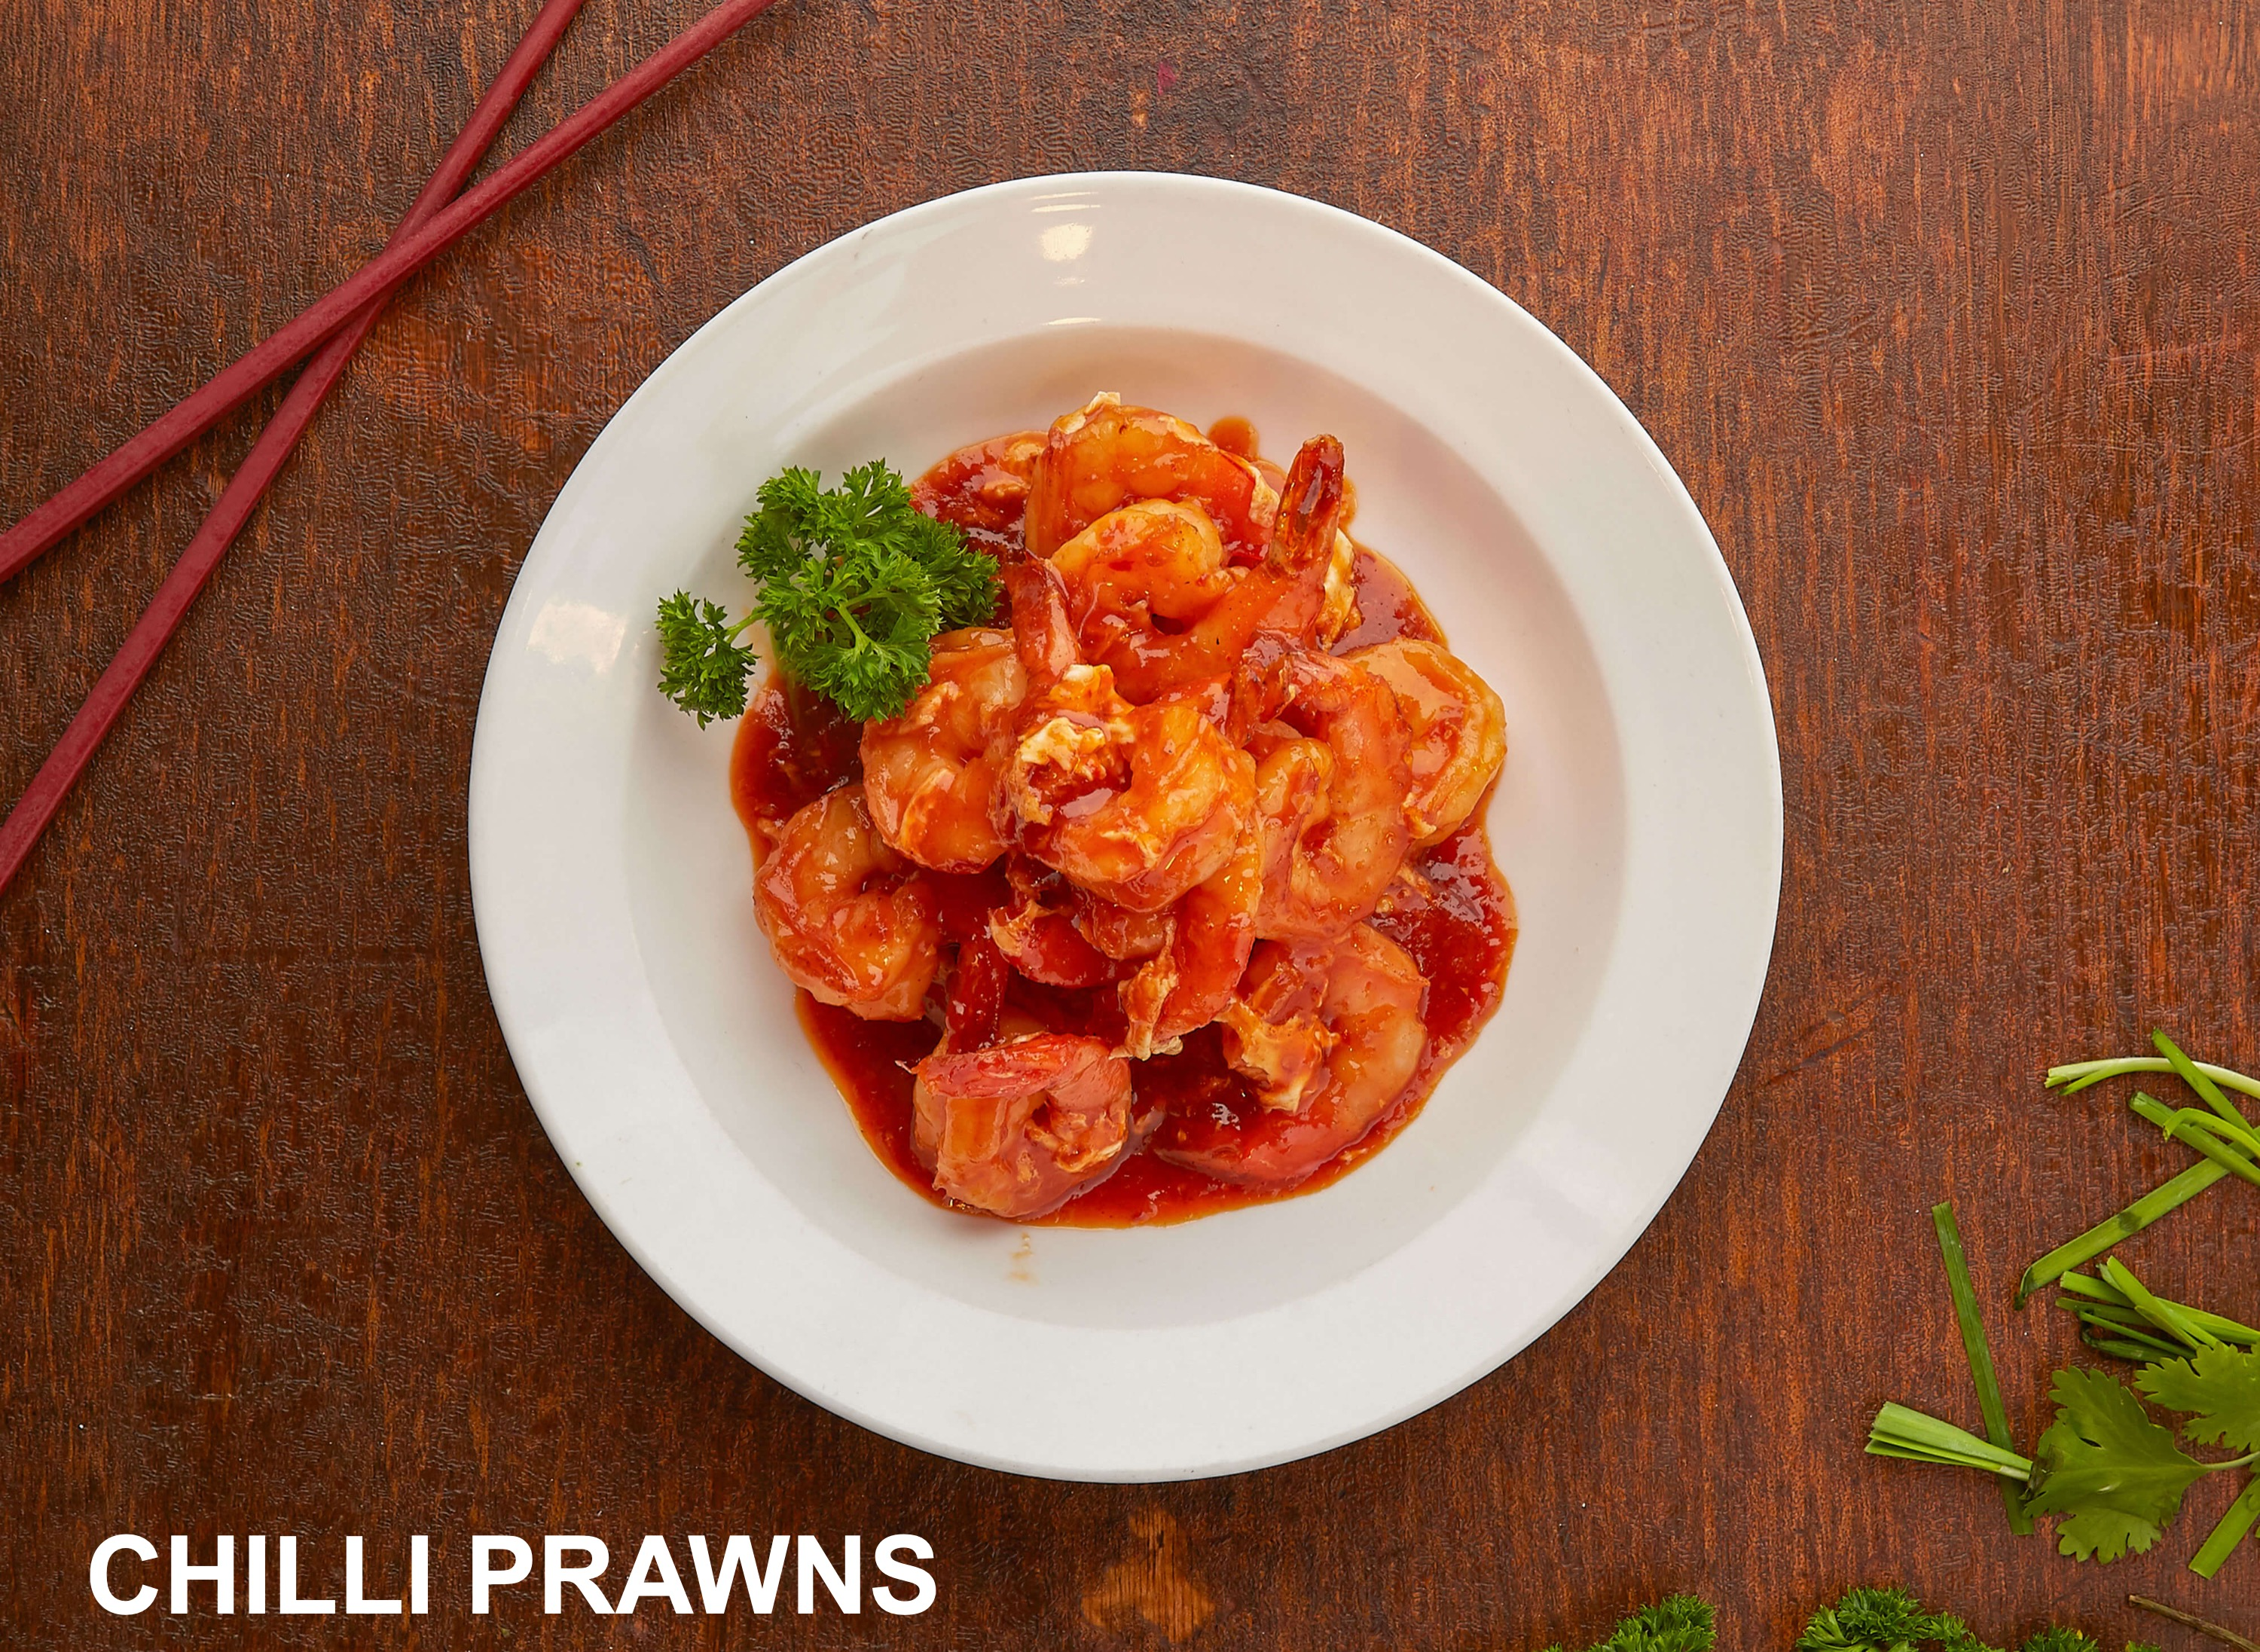 ChilliPrawns_ChintaKechil31537_edited